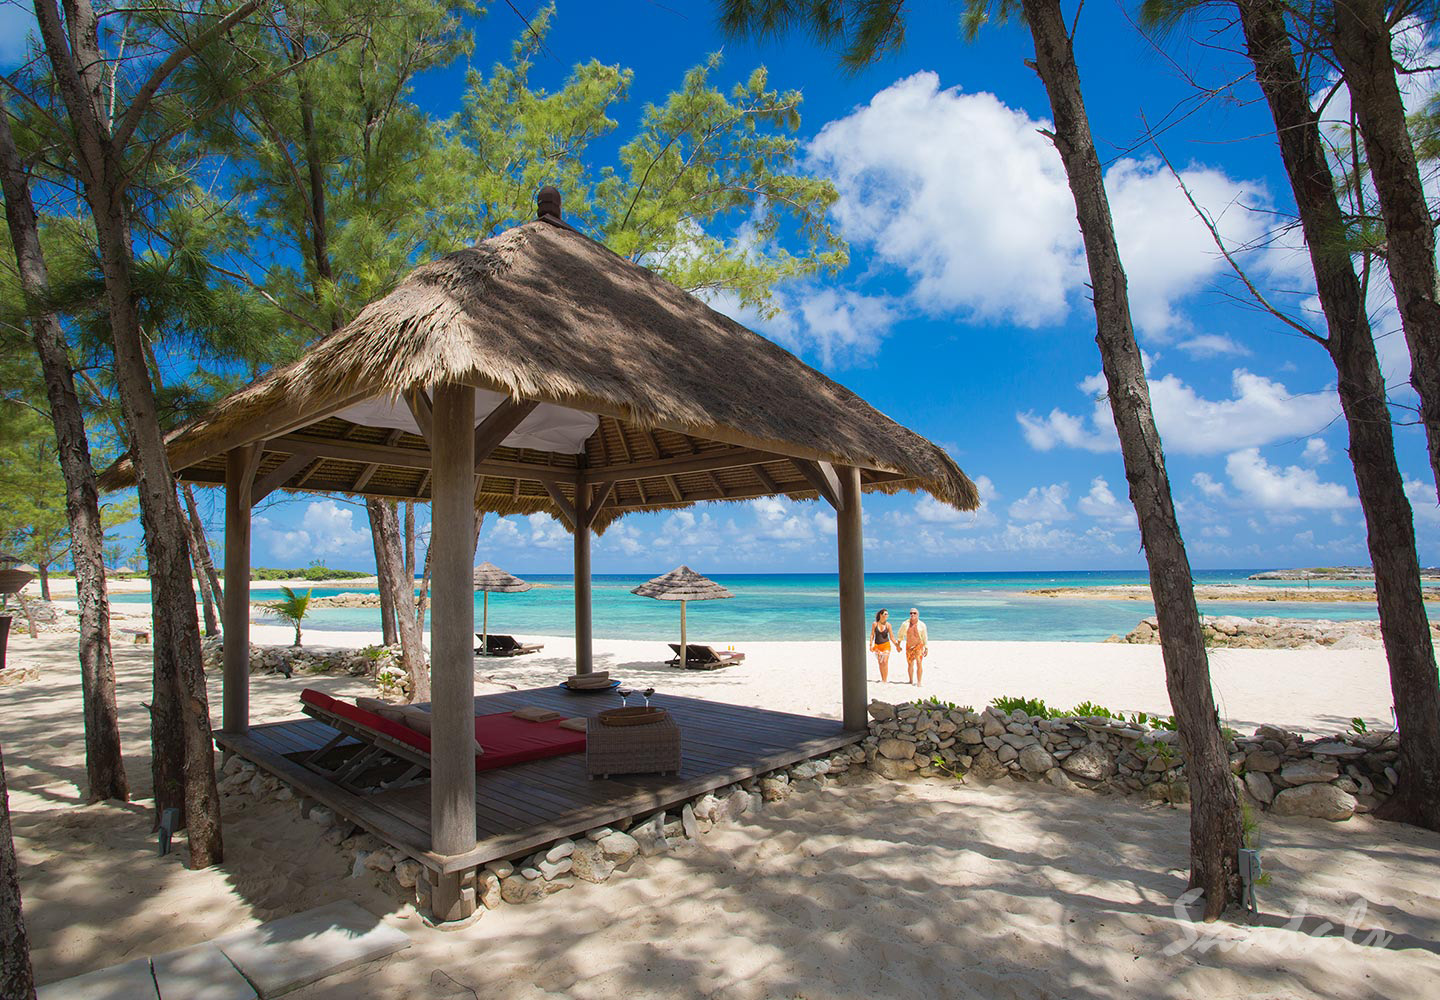 Travel Agency All-Inclusive Resort Sandals Royal Bahamian 075